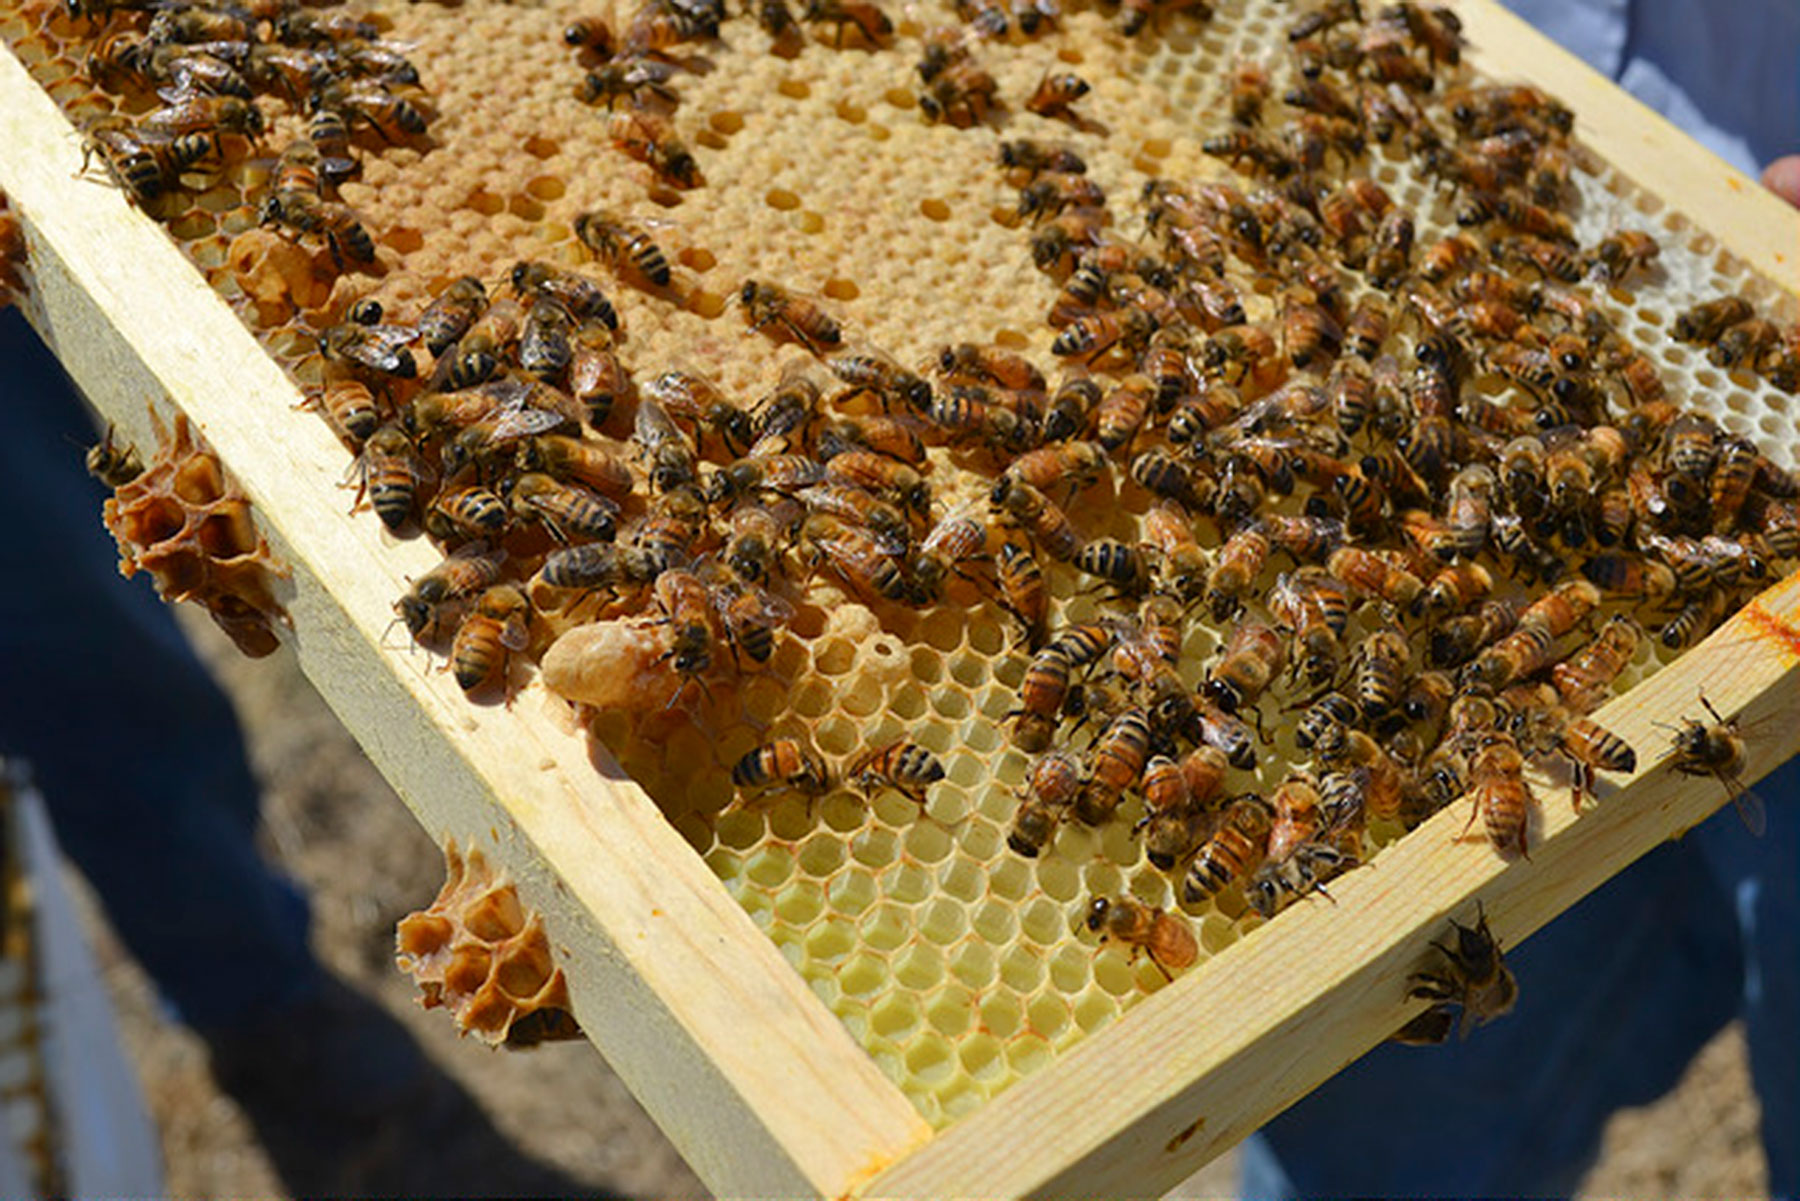 an analysis of beekeeping in bees to honey The number of beekeepers in the eu is decreasing but, the number of hives is increasing we love bees bees honey beekeeping  it is the report that is used as analysis of national beekeeping programmes founded with.